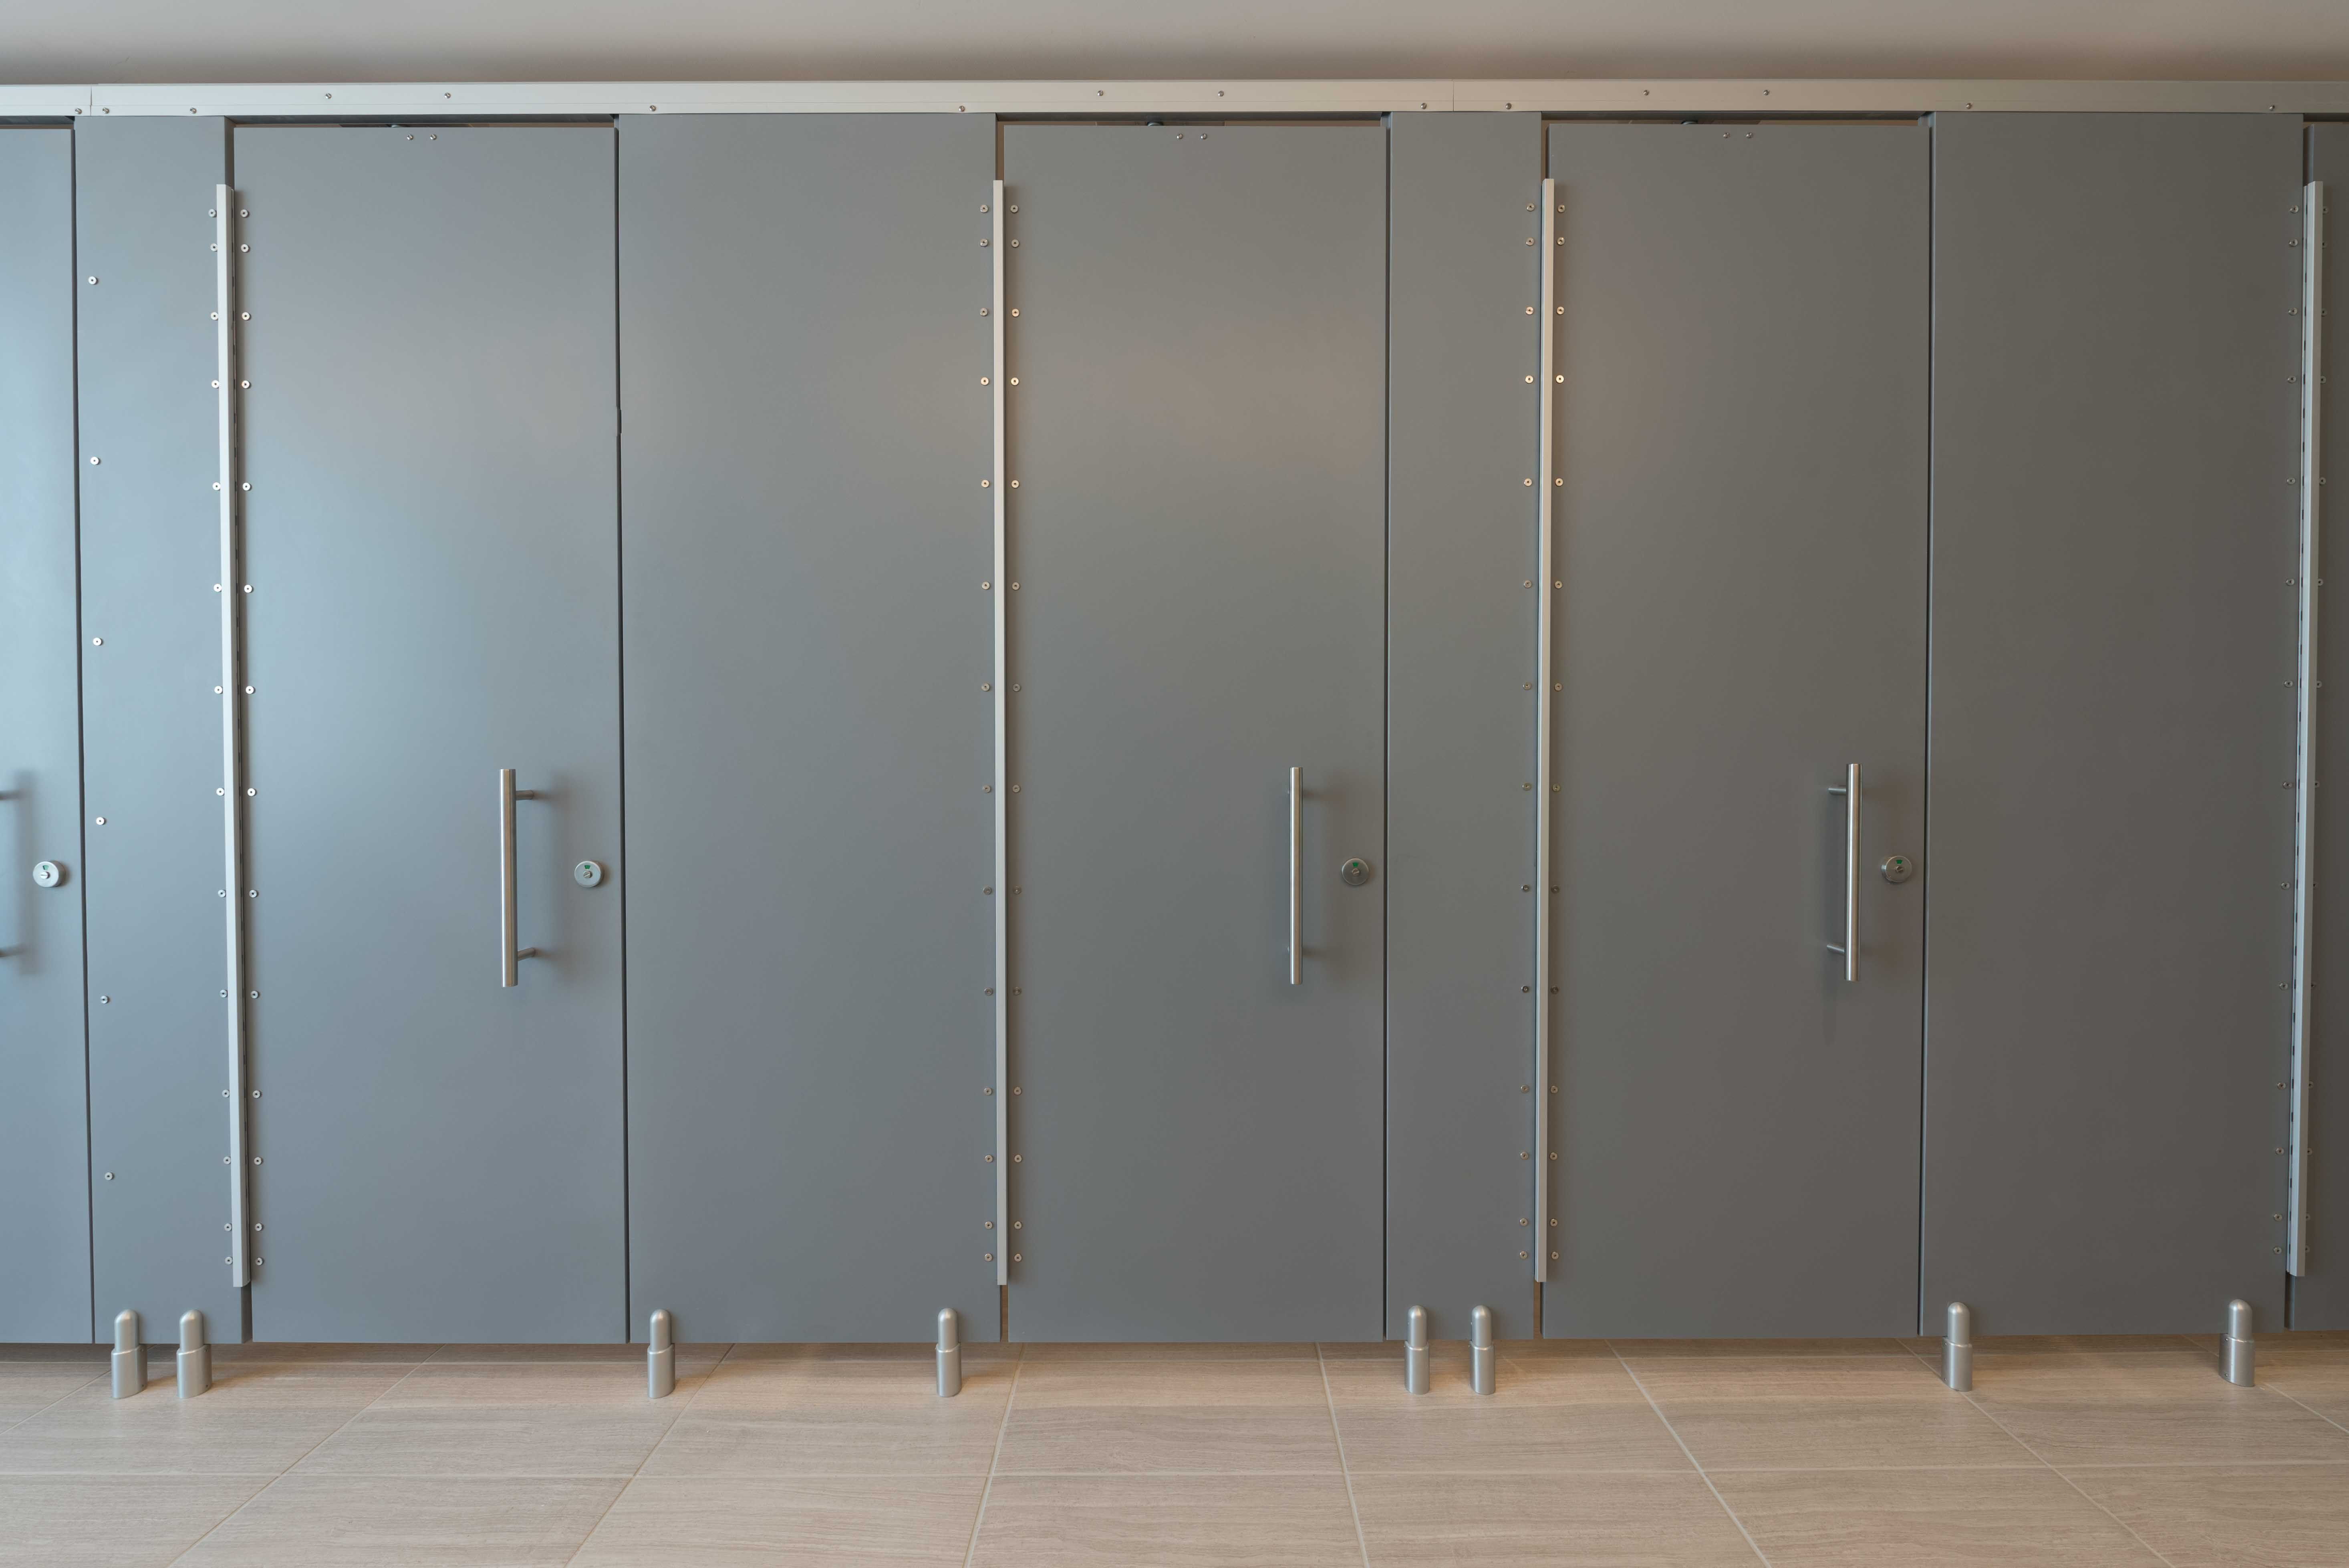 Ironwood Manufacturing Corian zero sightline bathroom doors and high privacy toilet partitions. Beautiful clean & Ironwood Manufacturing Corian zero sightline bathroom doors and ... pezcame.com